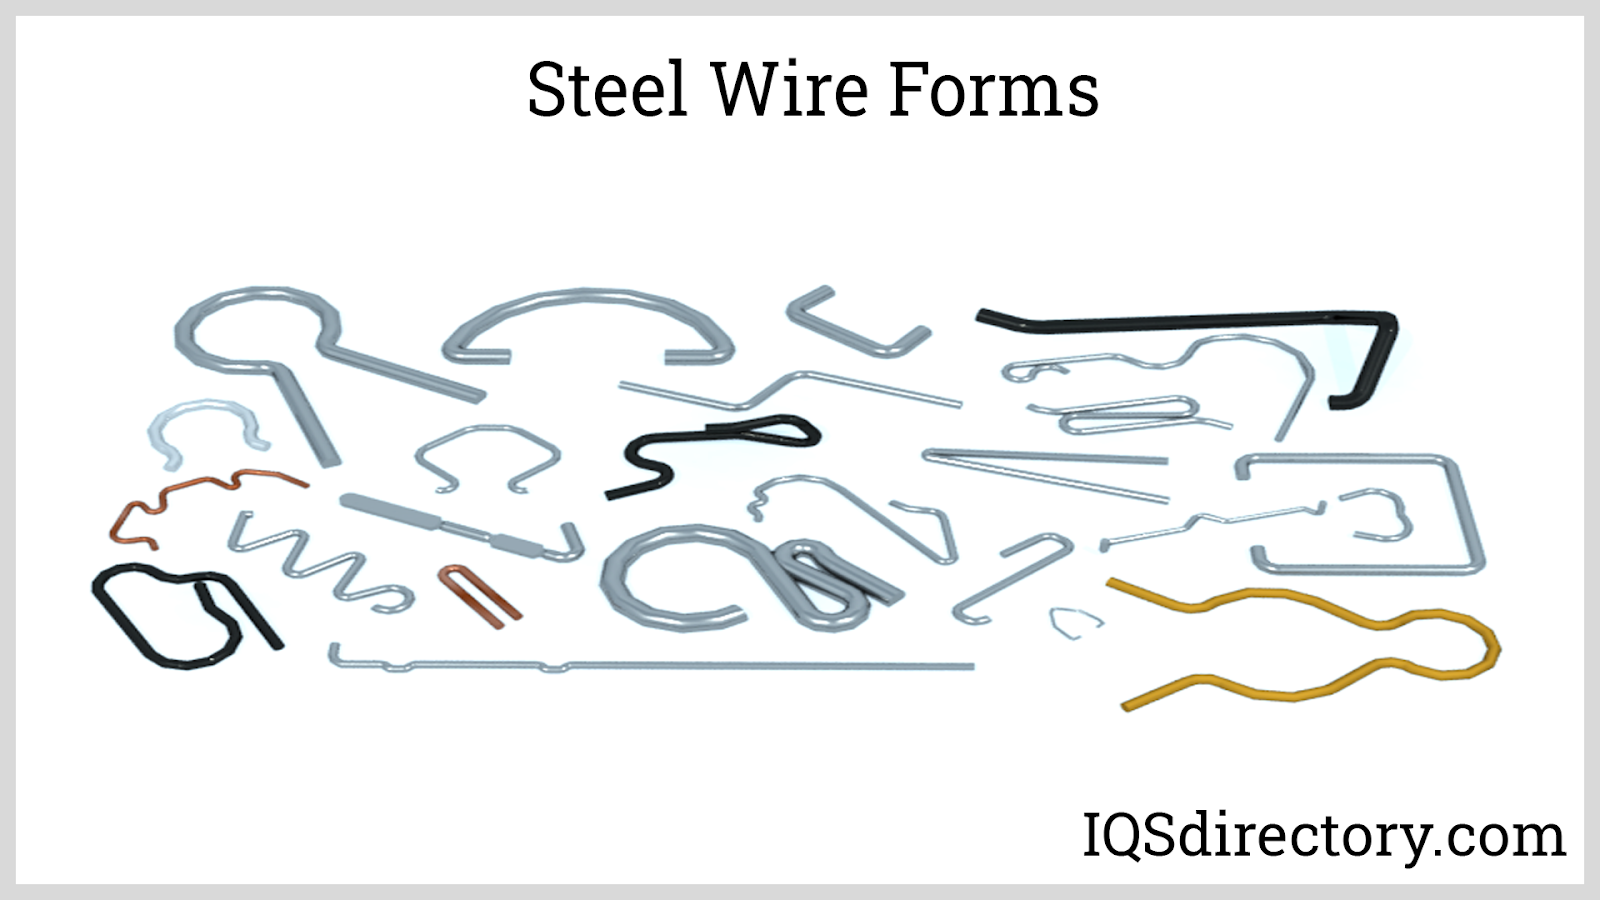 Steel Wire Forms